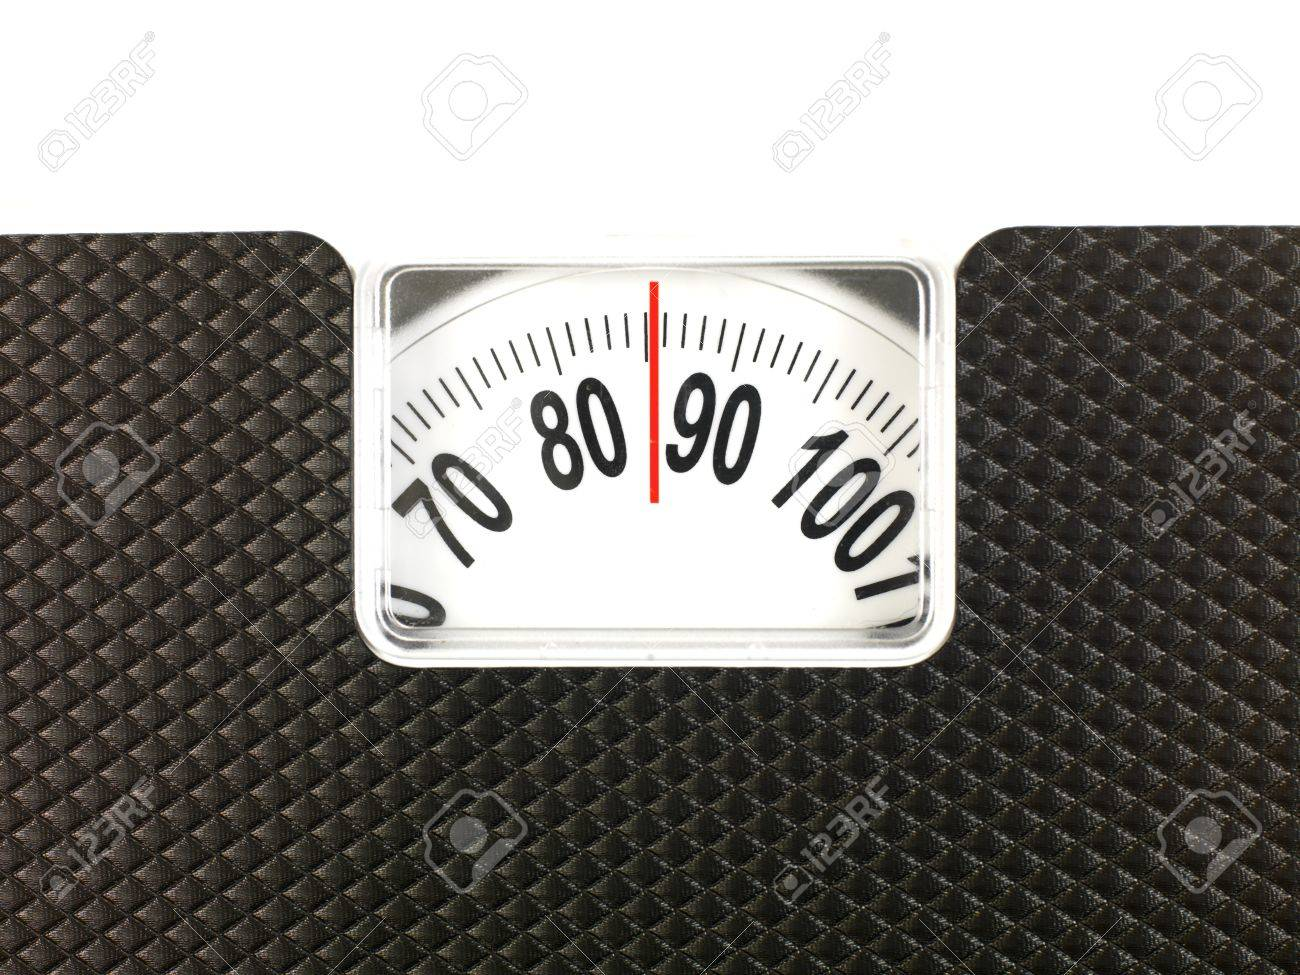 A conceptual dieting image using bathroom scales Stock Photo - 11993268